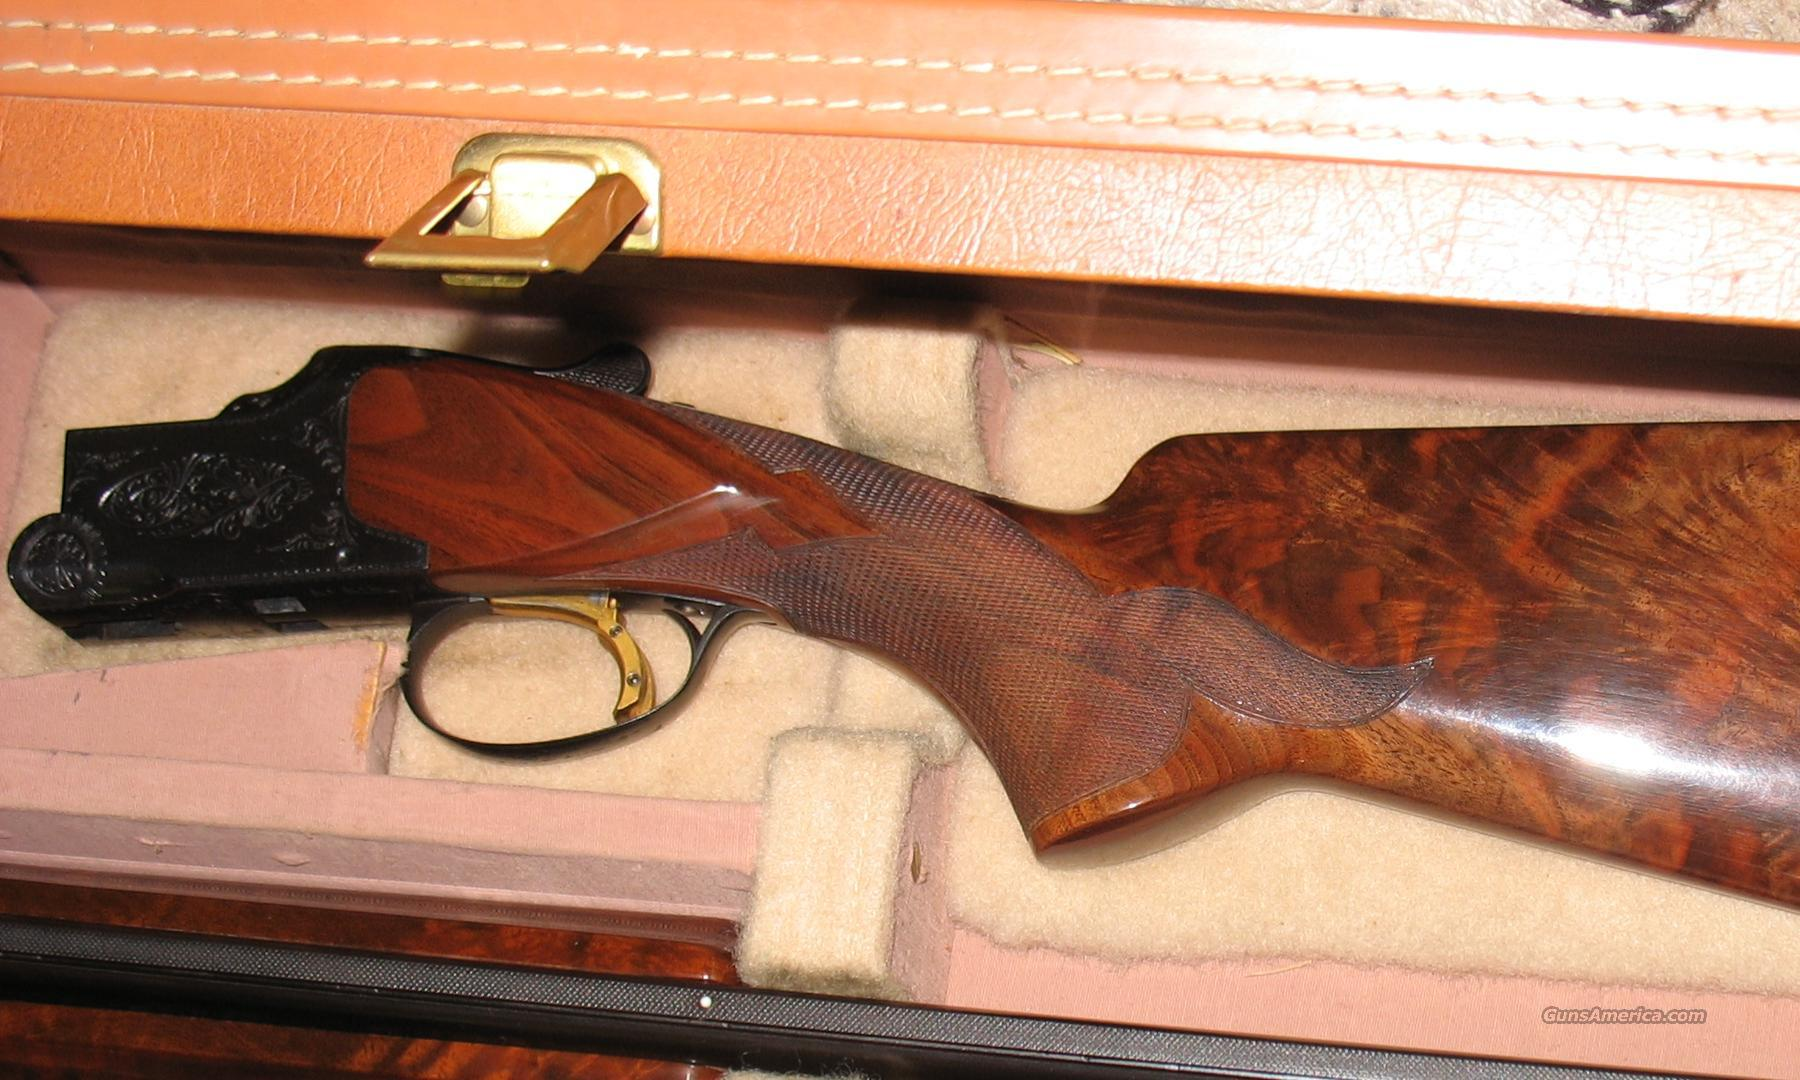 28 Ga. Superposed W/MIDAS WOOD  Guns > Shotguns > Browning Shotguns > Over Unders > Belgian Manufacture